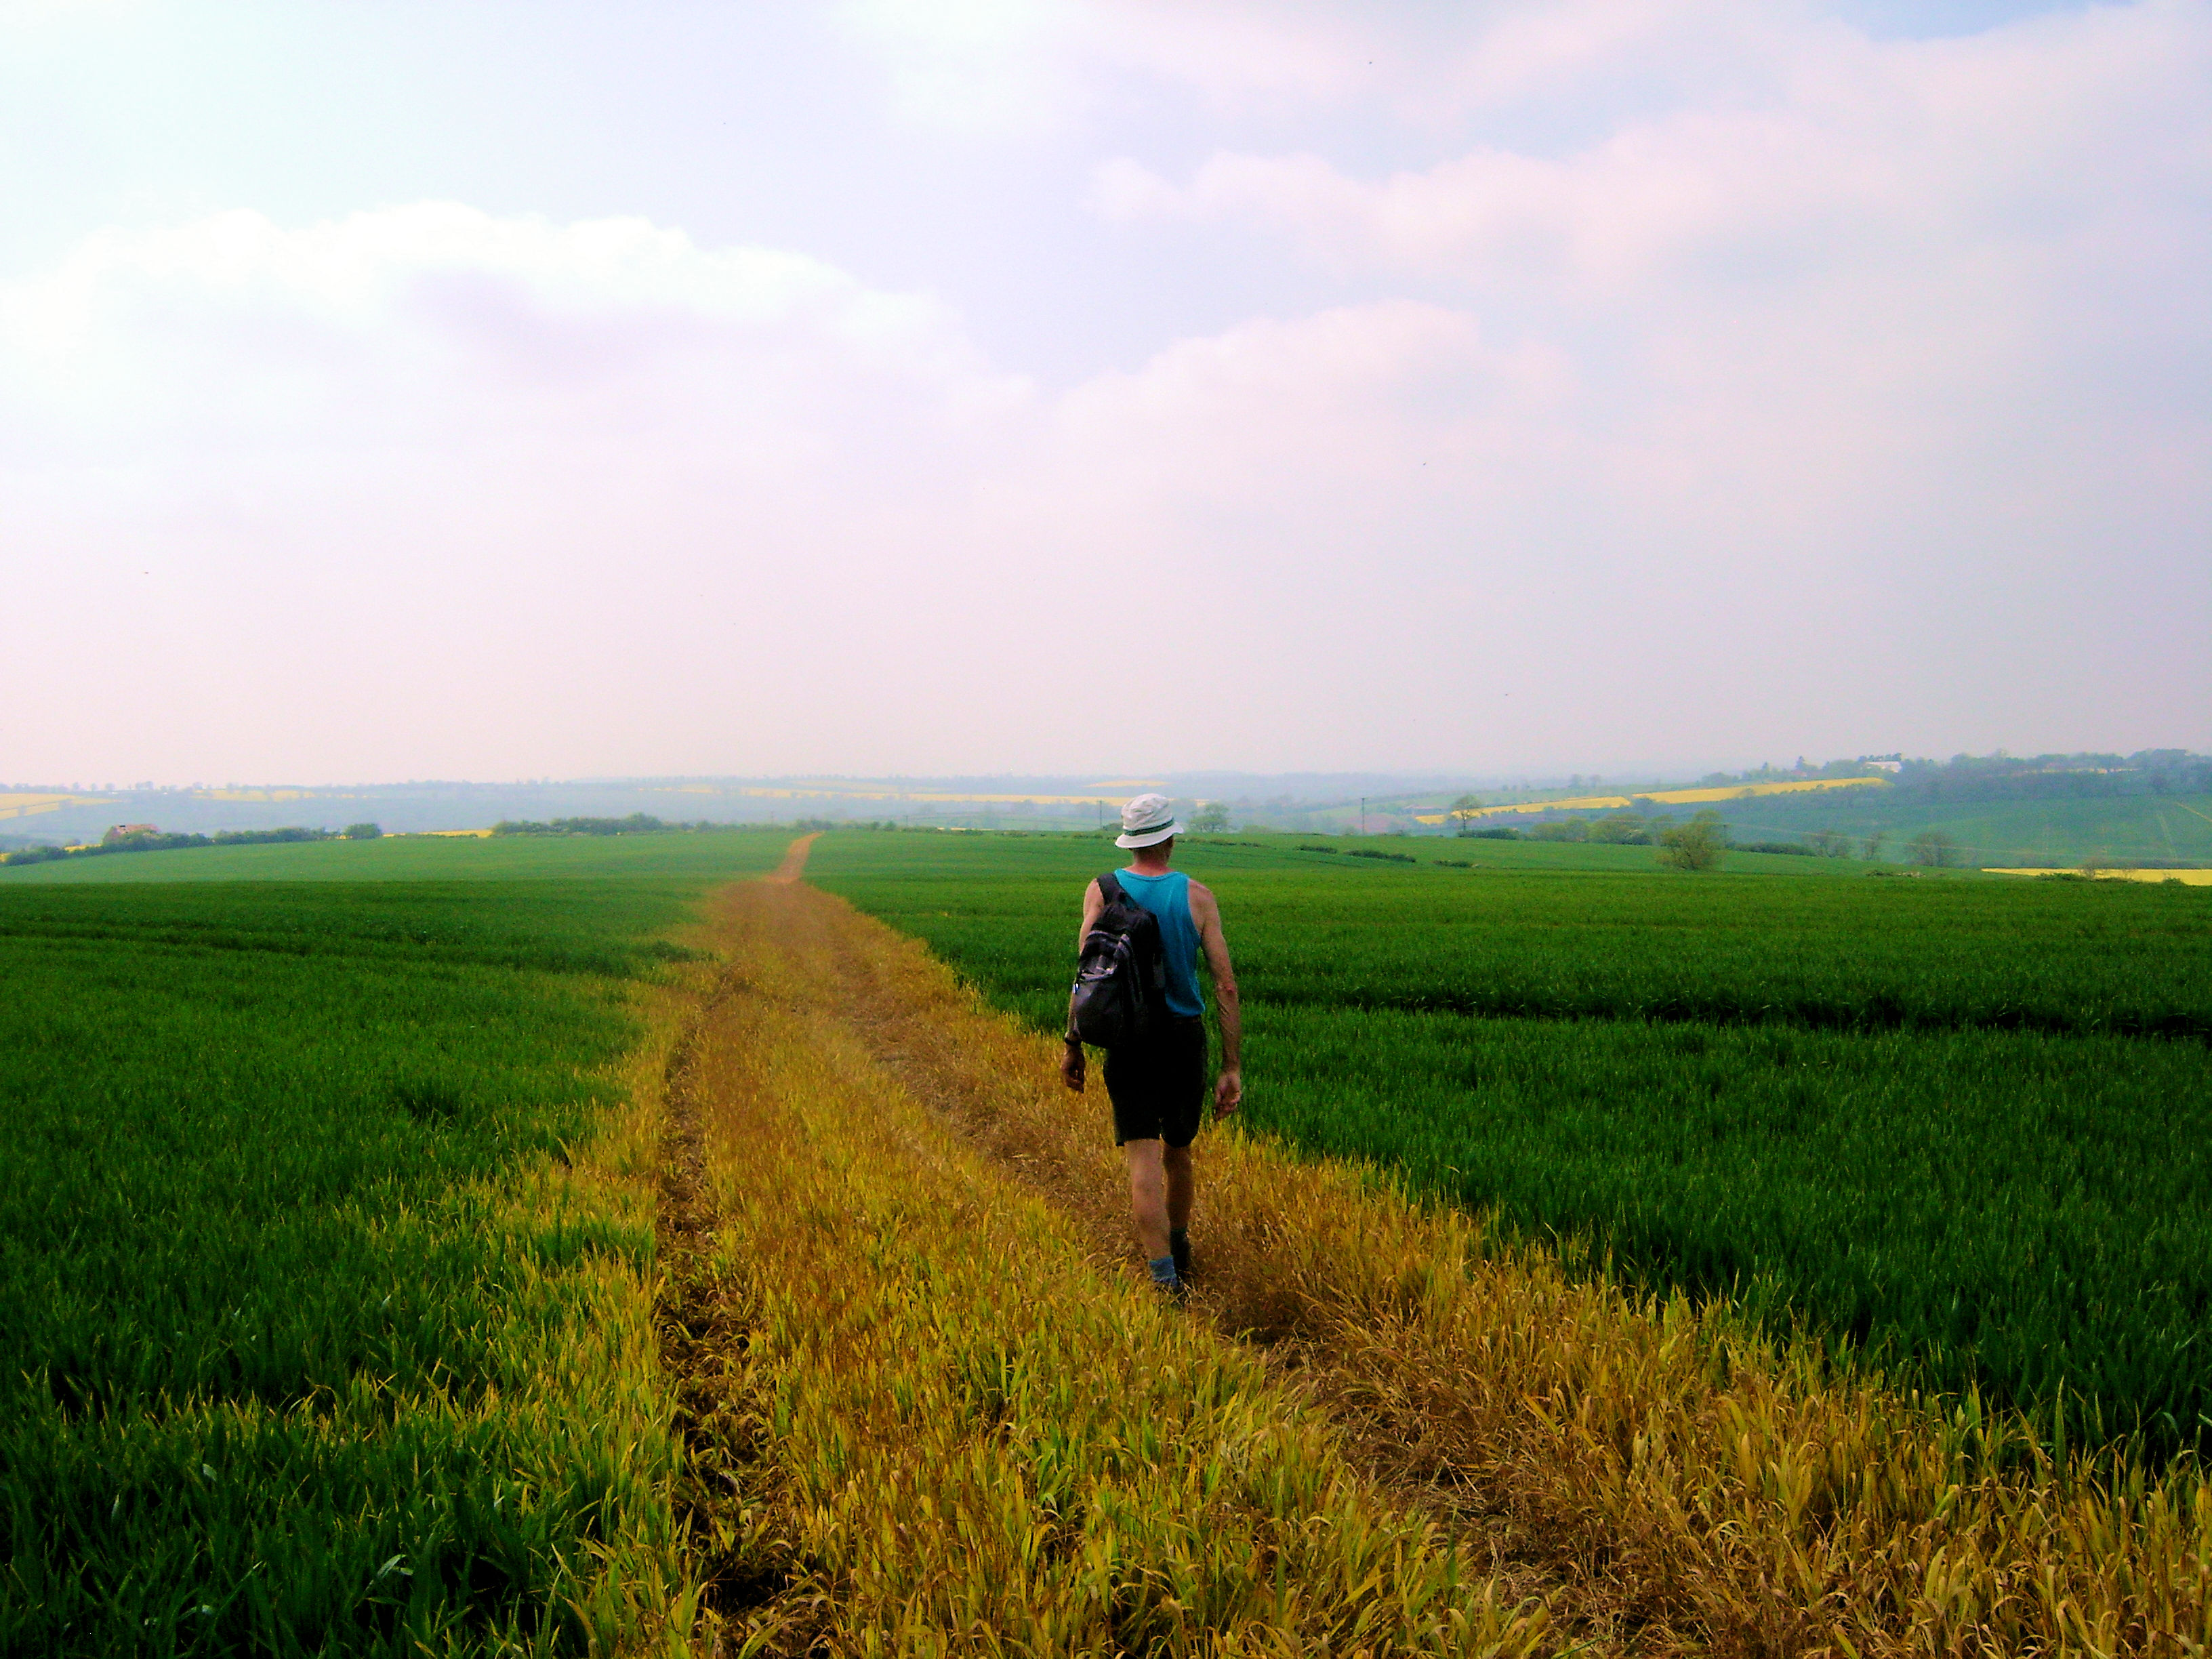 Ken crosses a large field on the way back